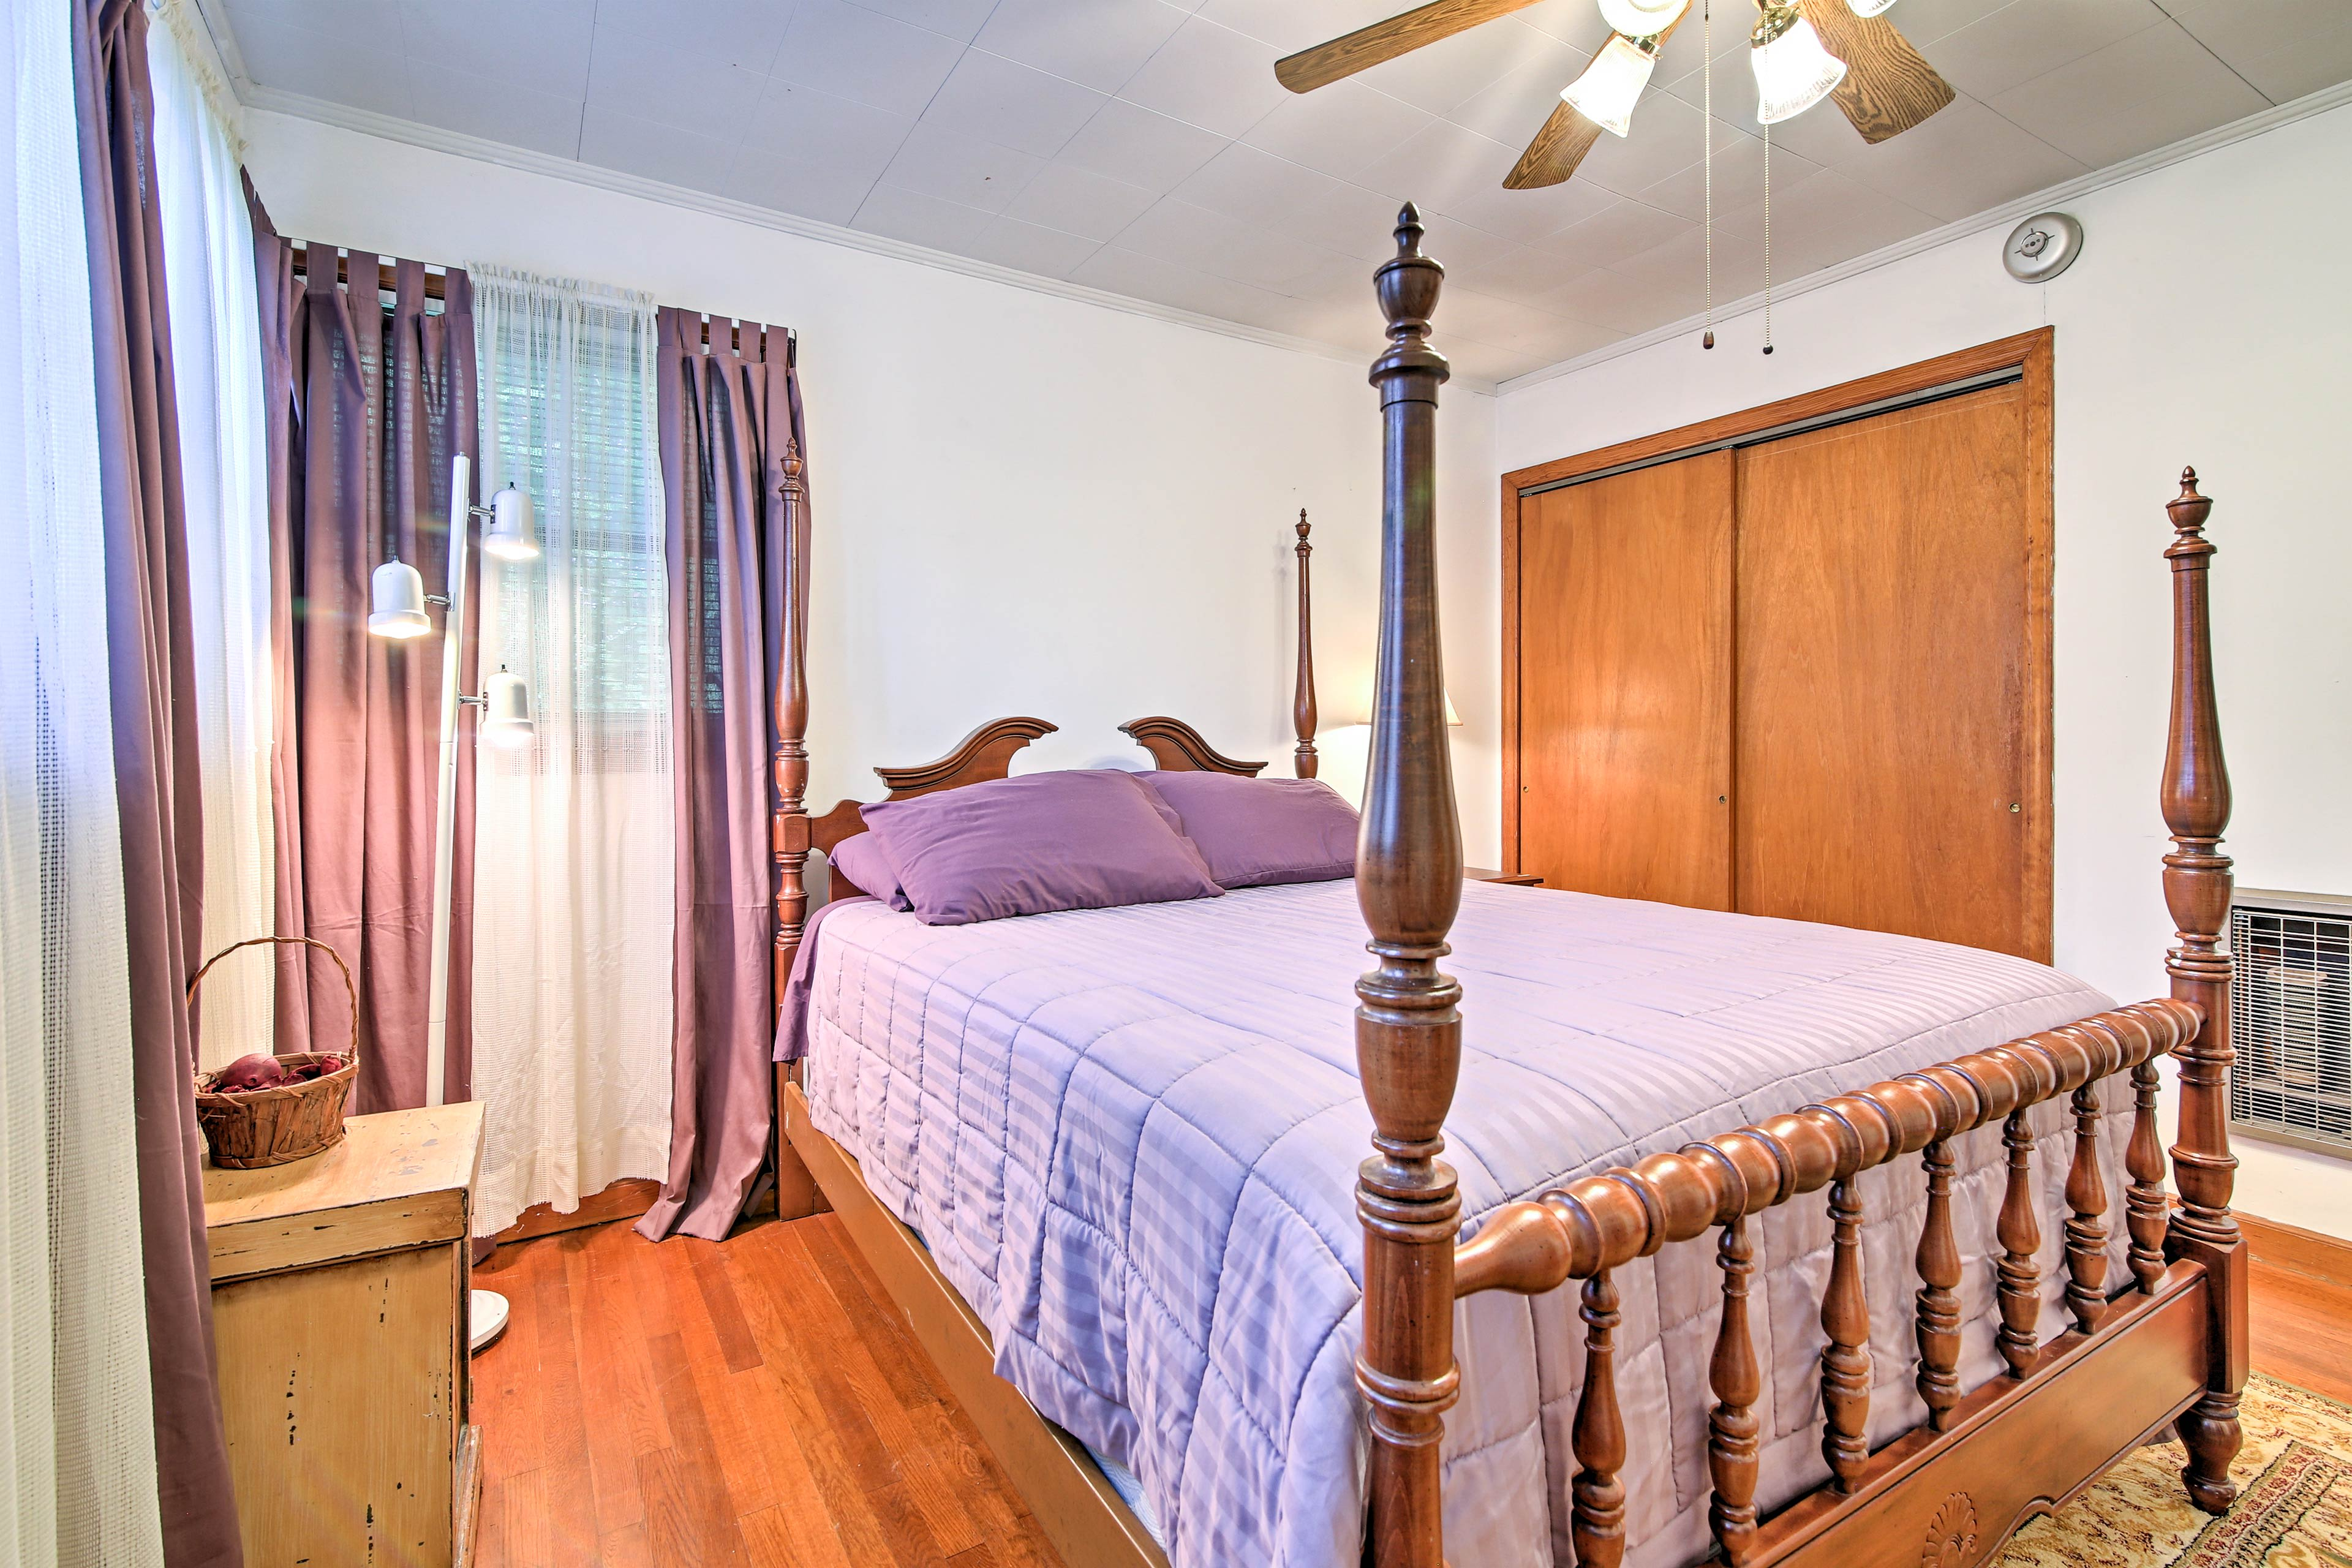 This second bedroom offers a queen bed and 4-poster bed.